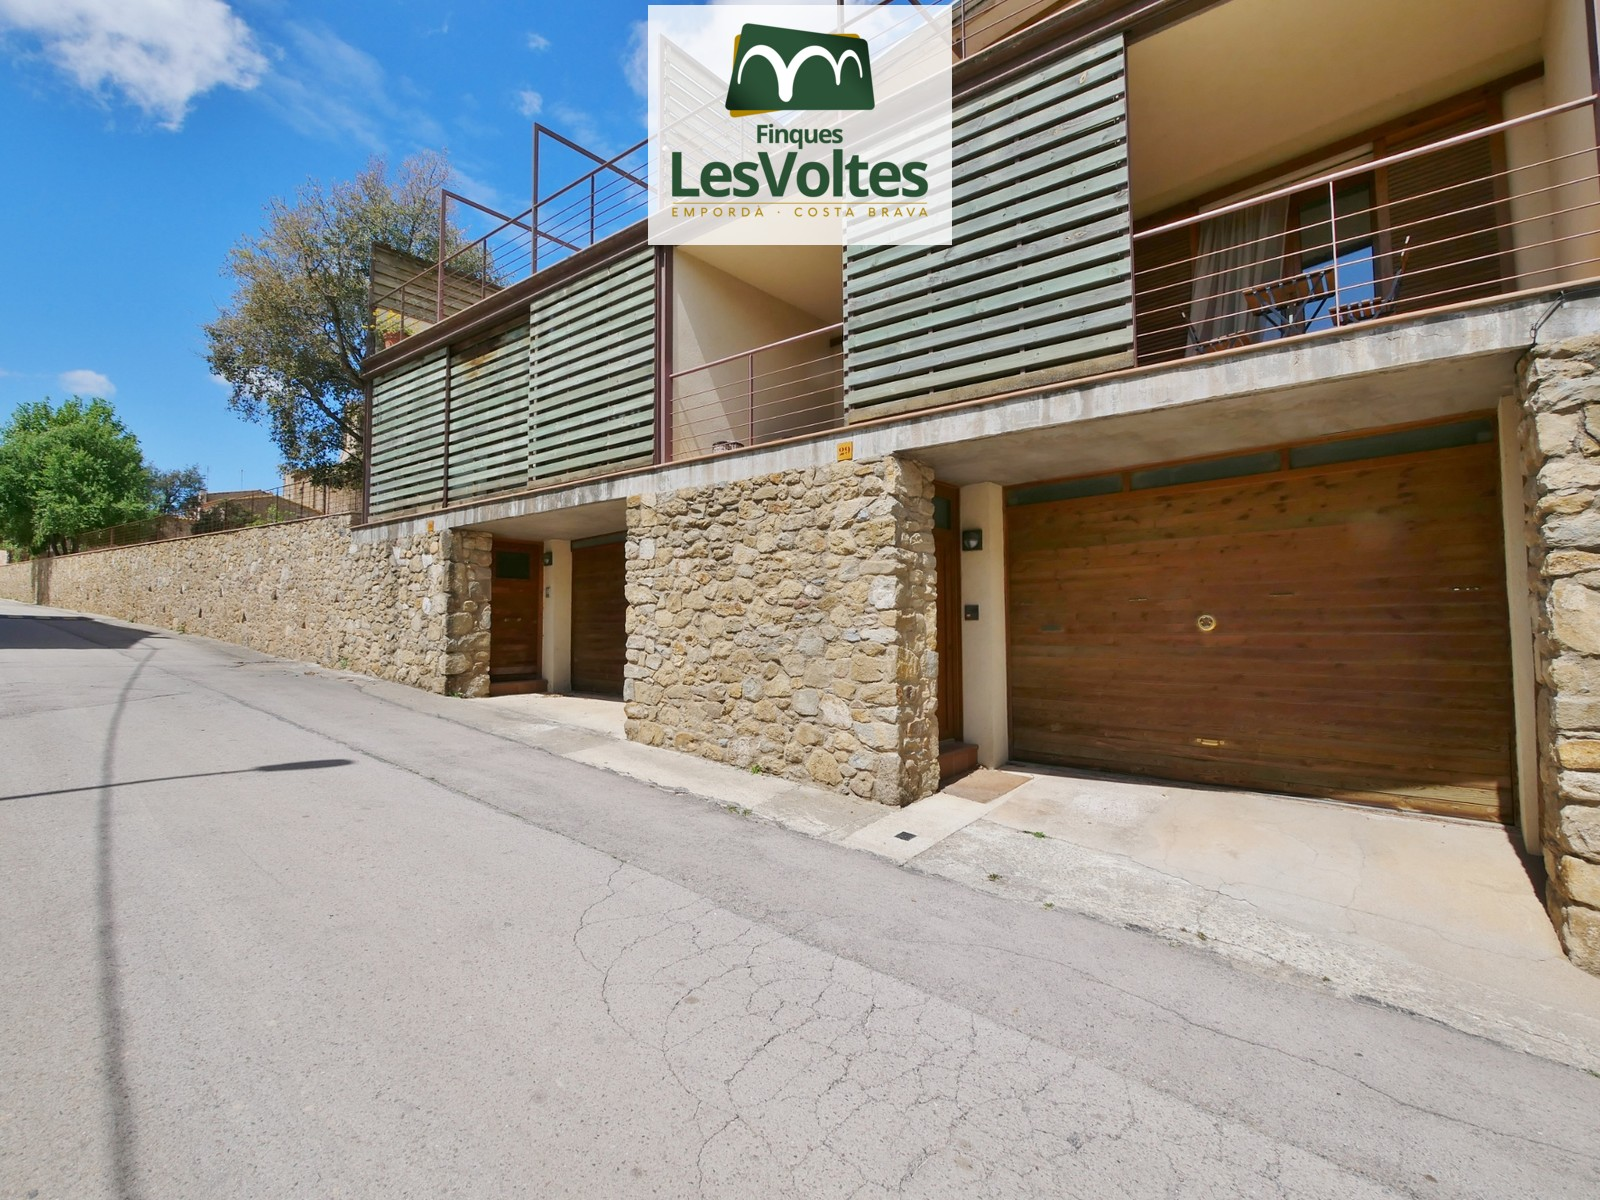 SINGLE FAMILY OF 261 M2 WITH 4 BEDROOMS, GARAGE, PATIO AND TERRACE FOR SALE IN PARLAVÀ.